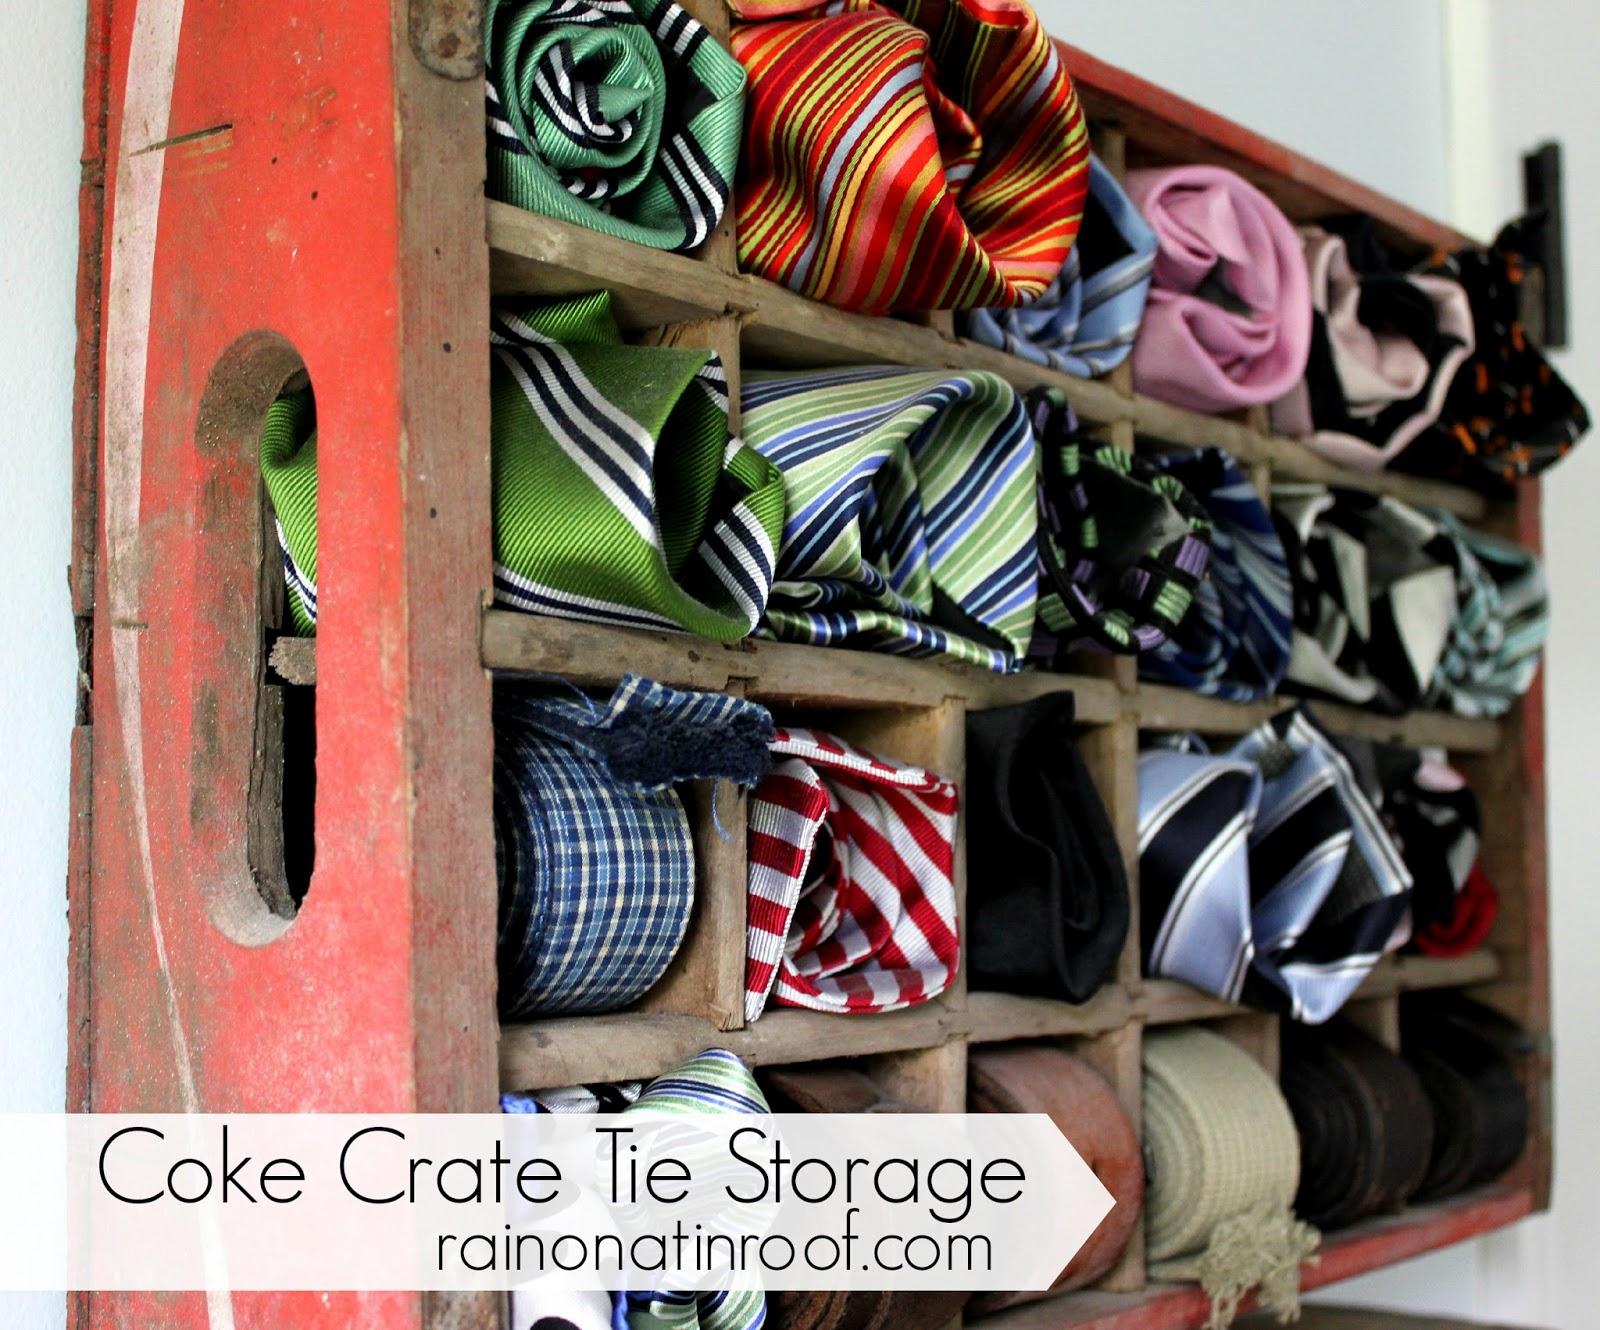 Coke Crate Tie Storage rainonatinroof.com #coke #crate #tie # & Coke Crate Tie Holder